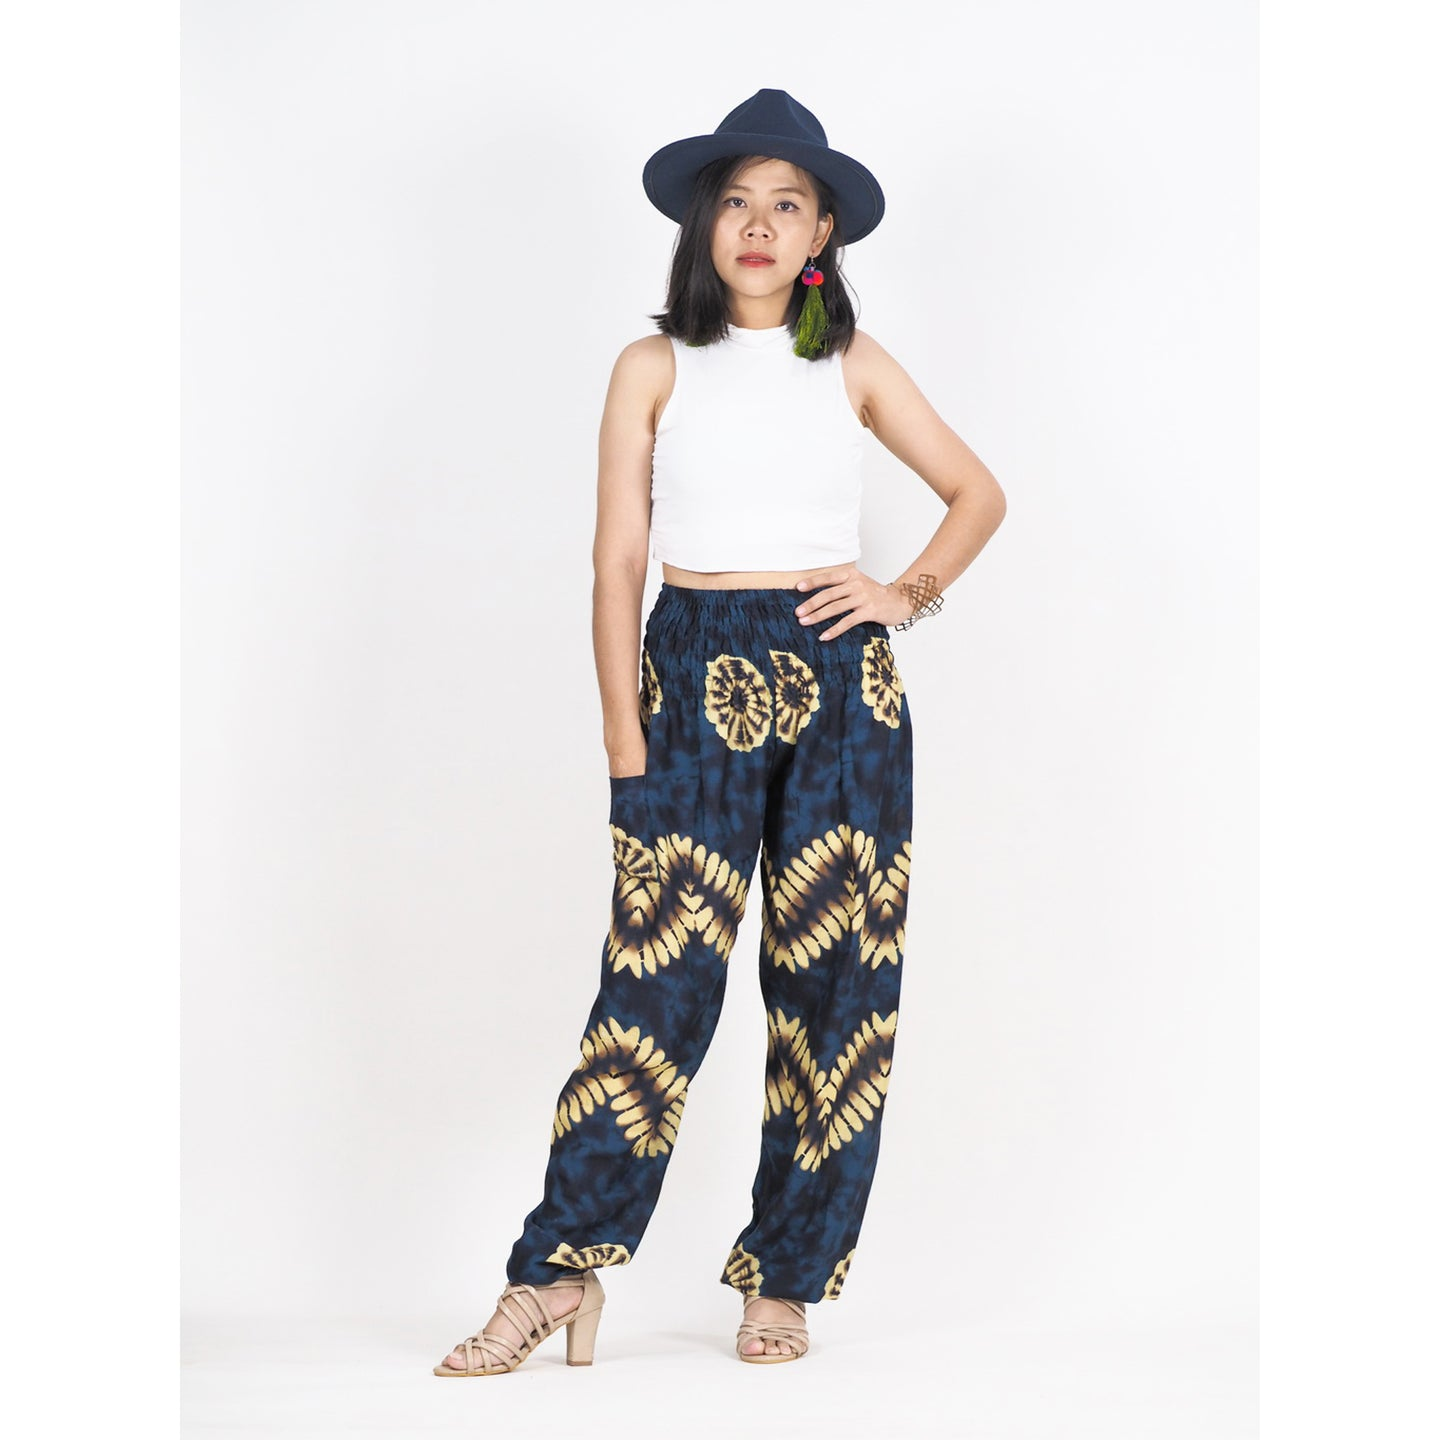 Tie dye 103 women harem pants in Navy blue PP0004 020103 06